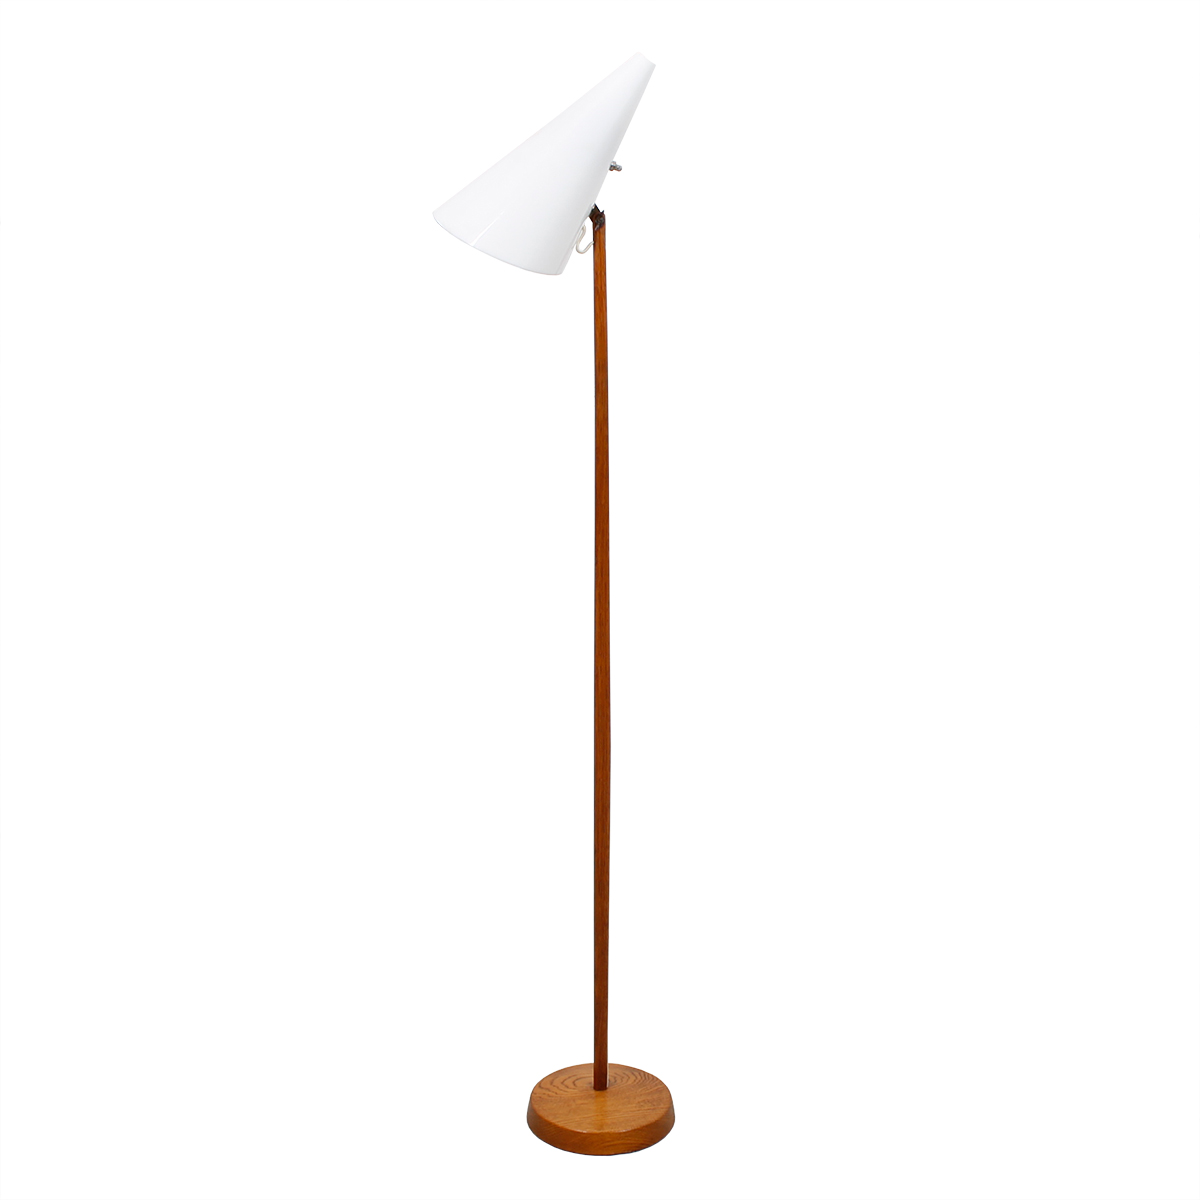 Rare Luxus Swedish Modern Teak Adjustable Floor Lamp